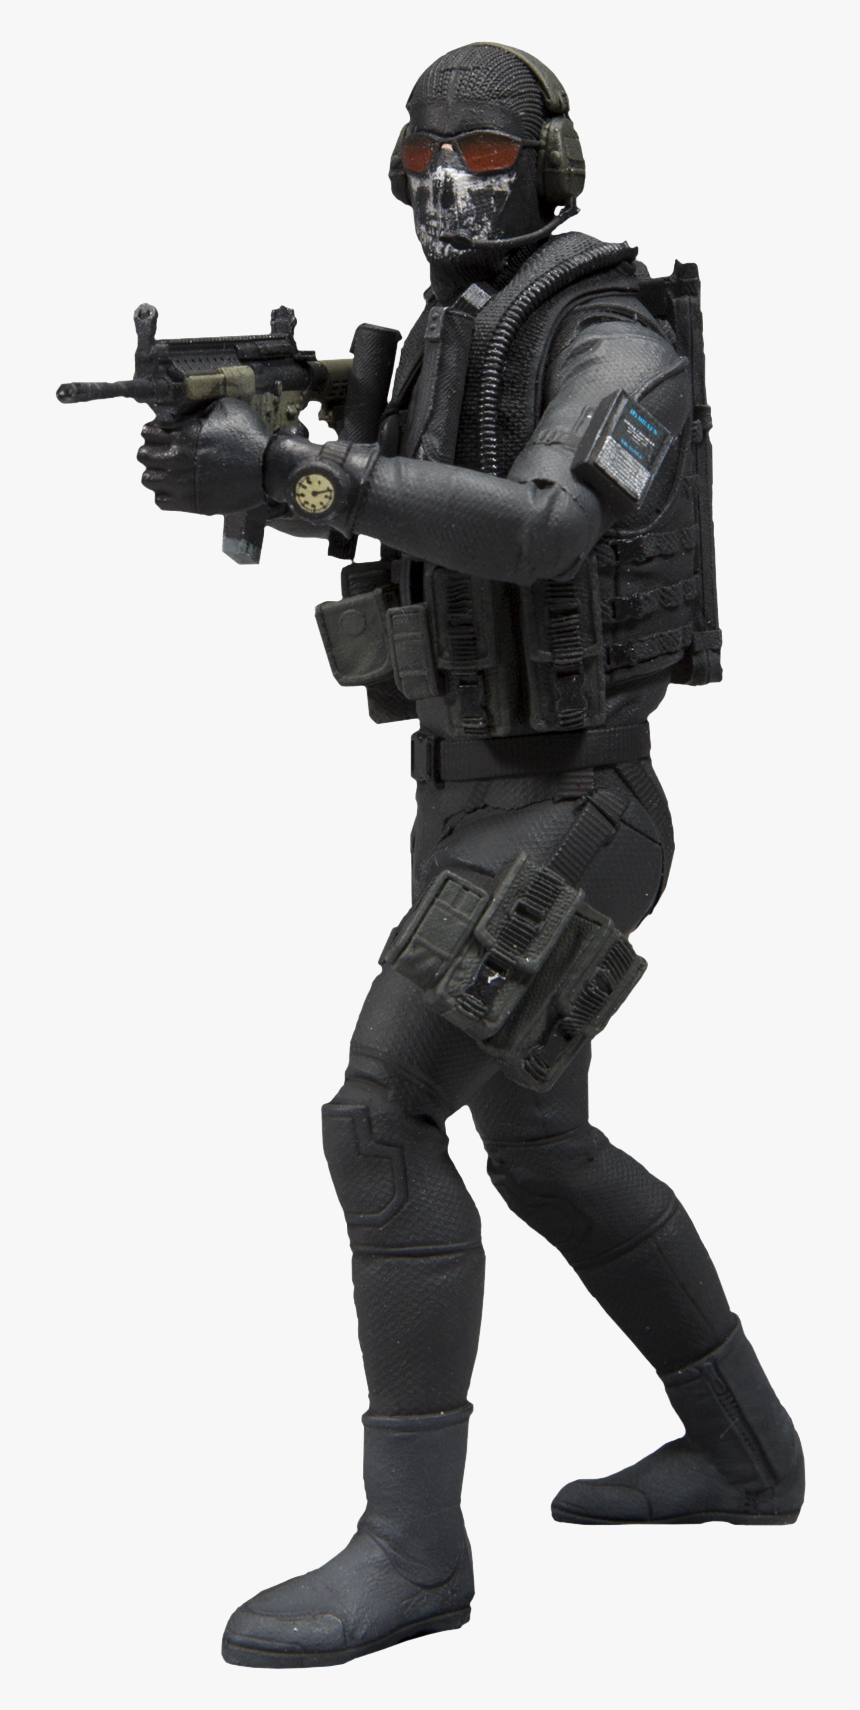 Call Of Duty - Call Of Duty Ghost Figure, HD Png Download, Free Download